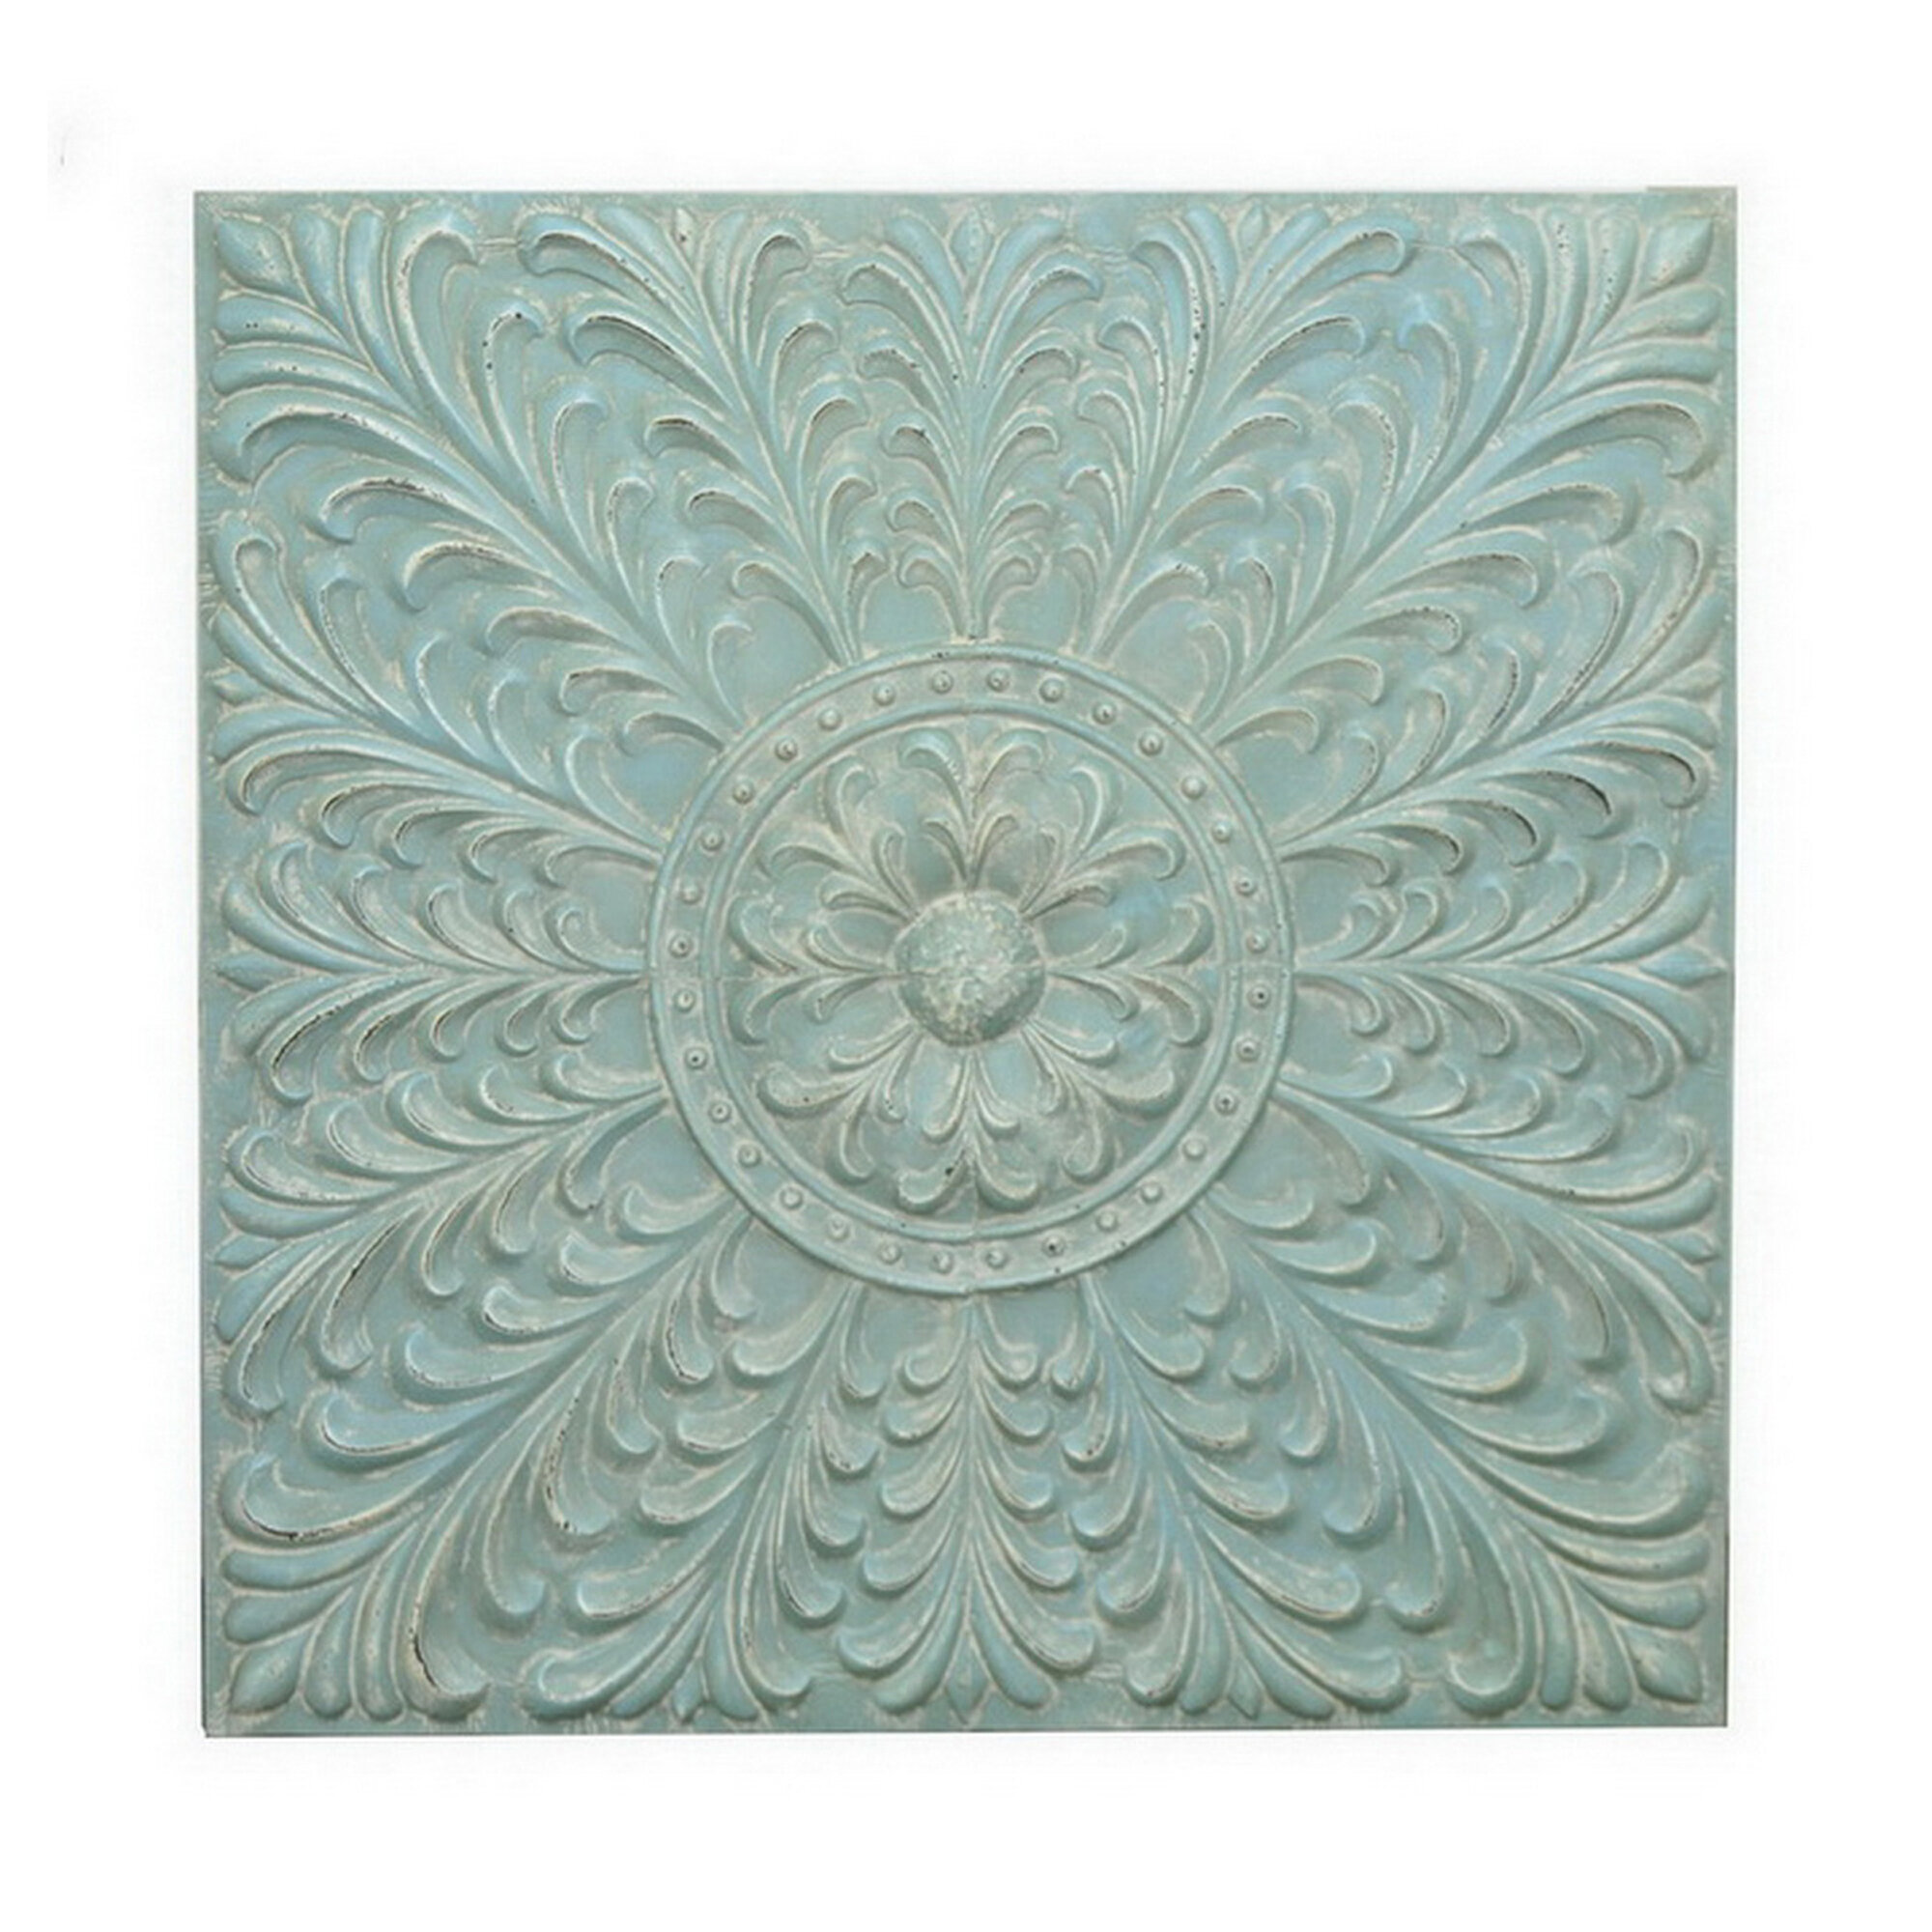 attractive Square Metal Wall Decor Part - 8: Darby Home Co Square Metal Wall Décor | Wayfair